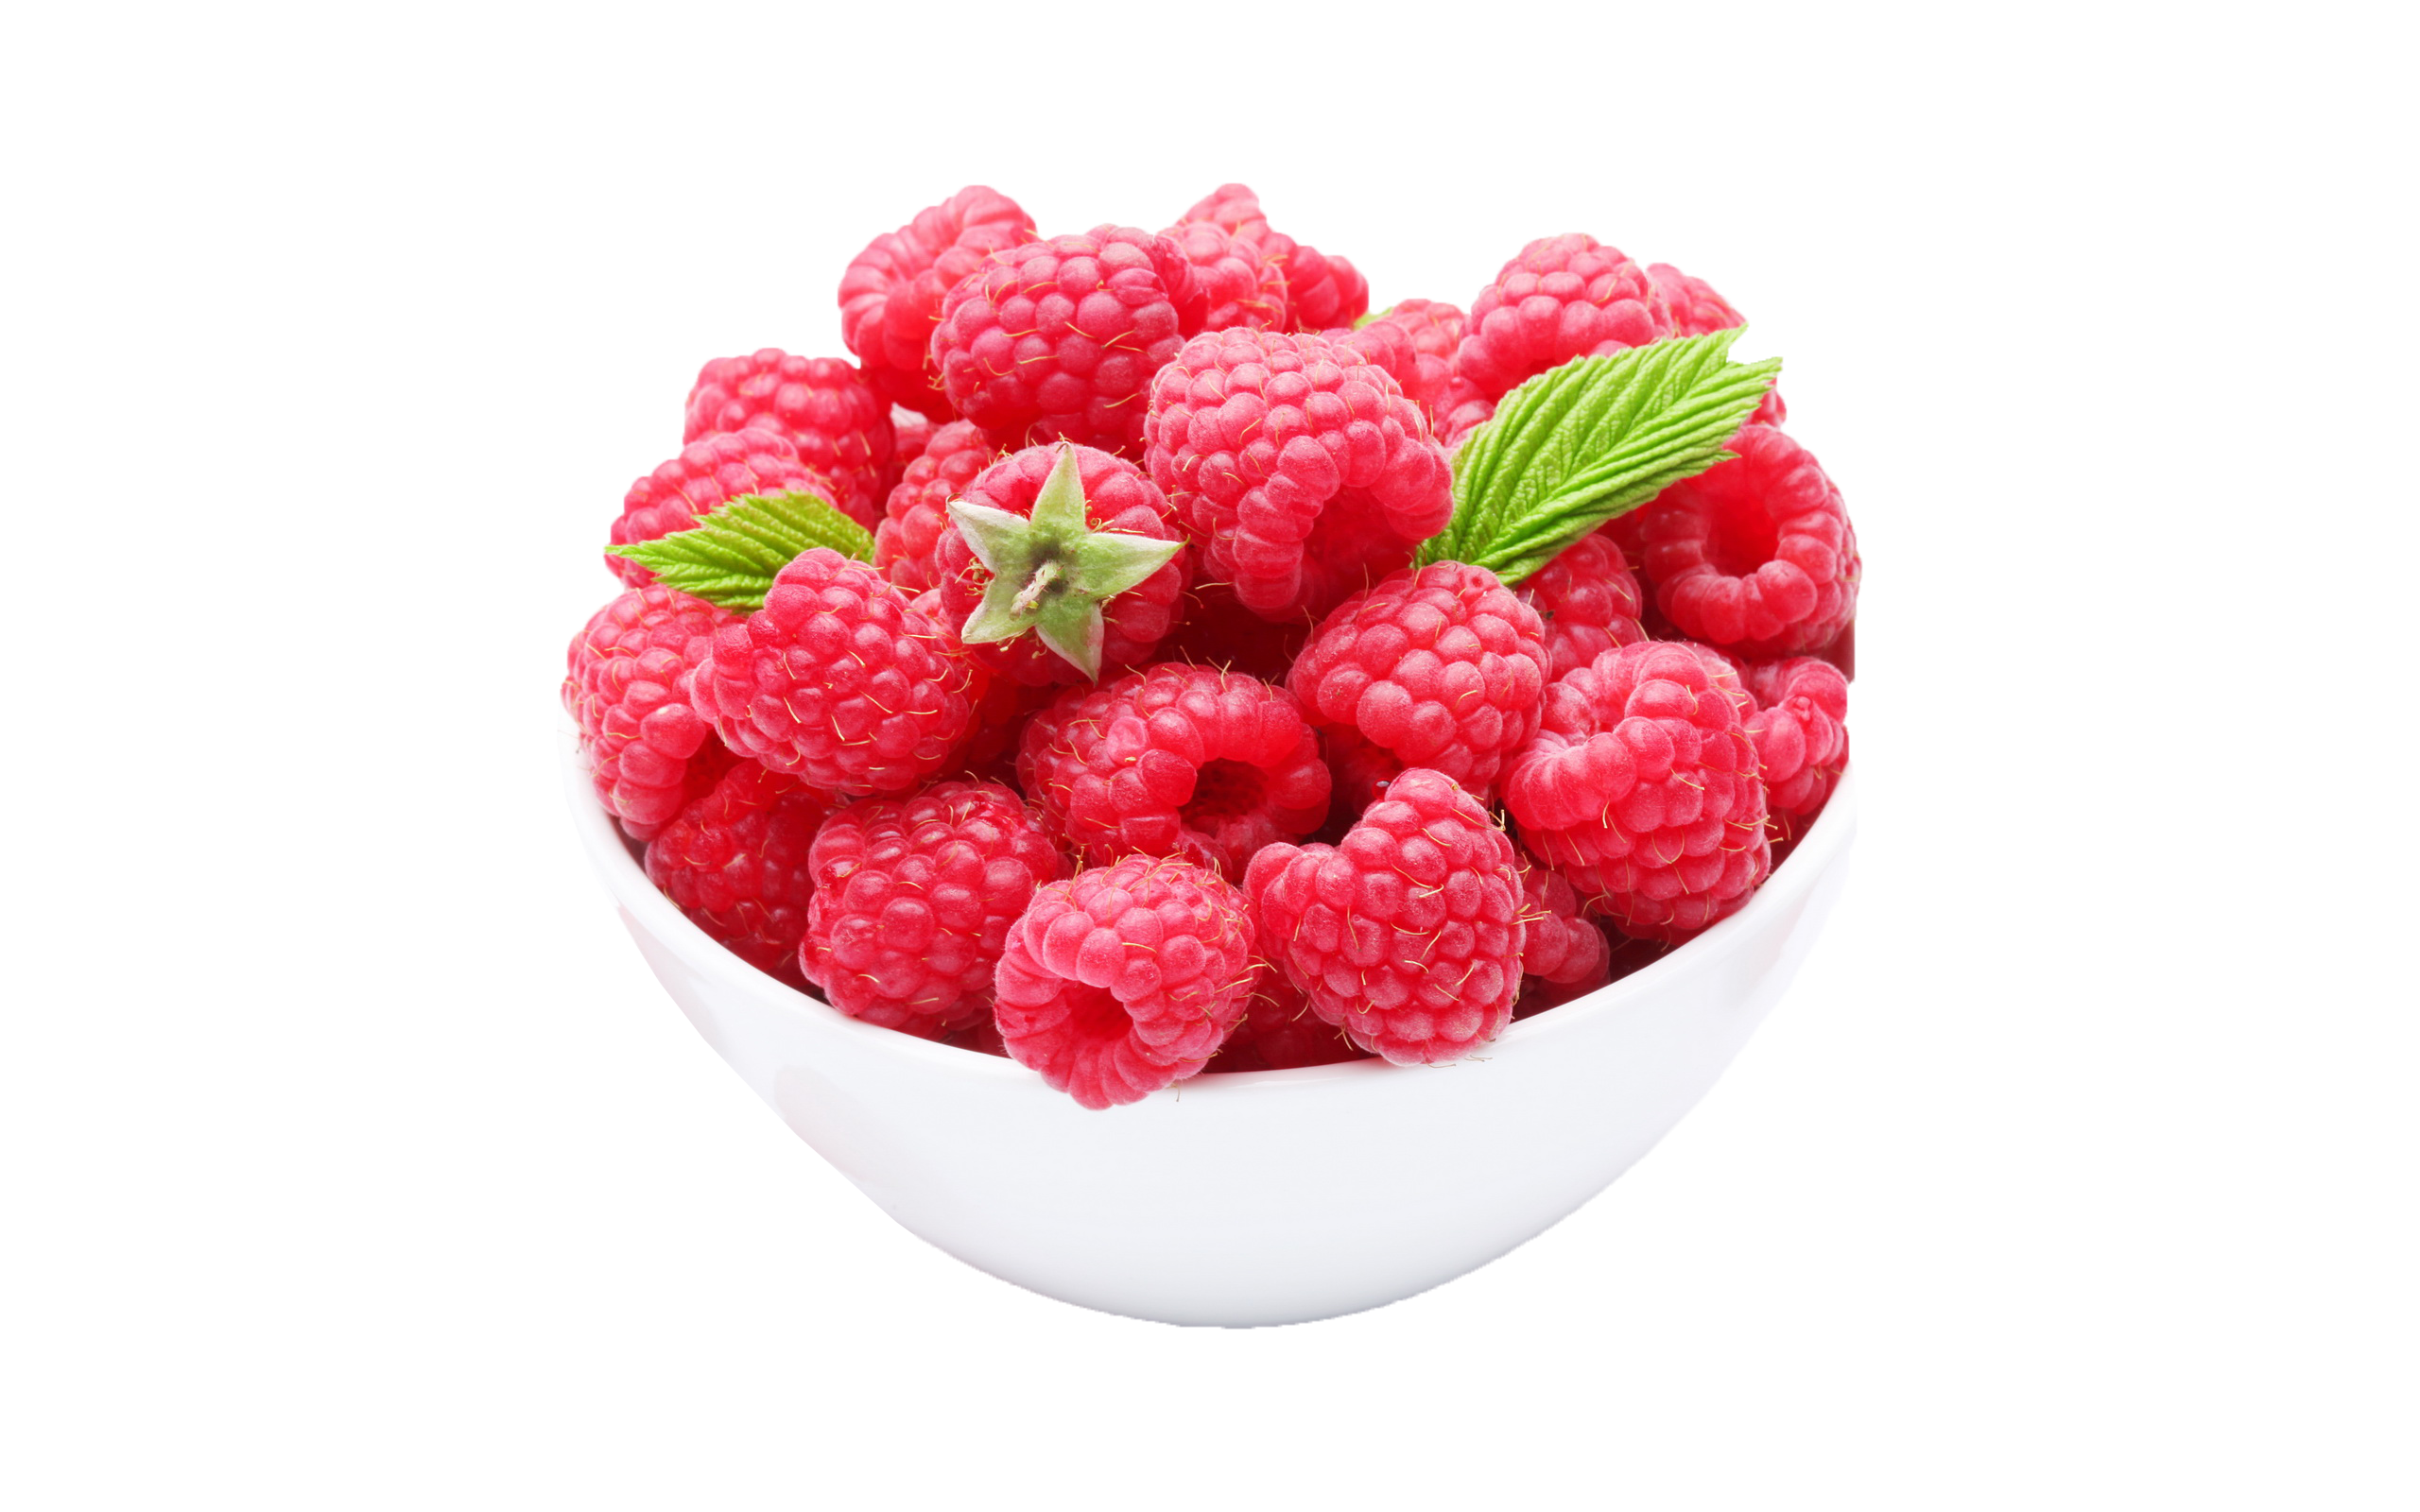 Transparent bowl fruit. Raspberries in a png